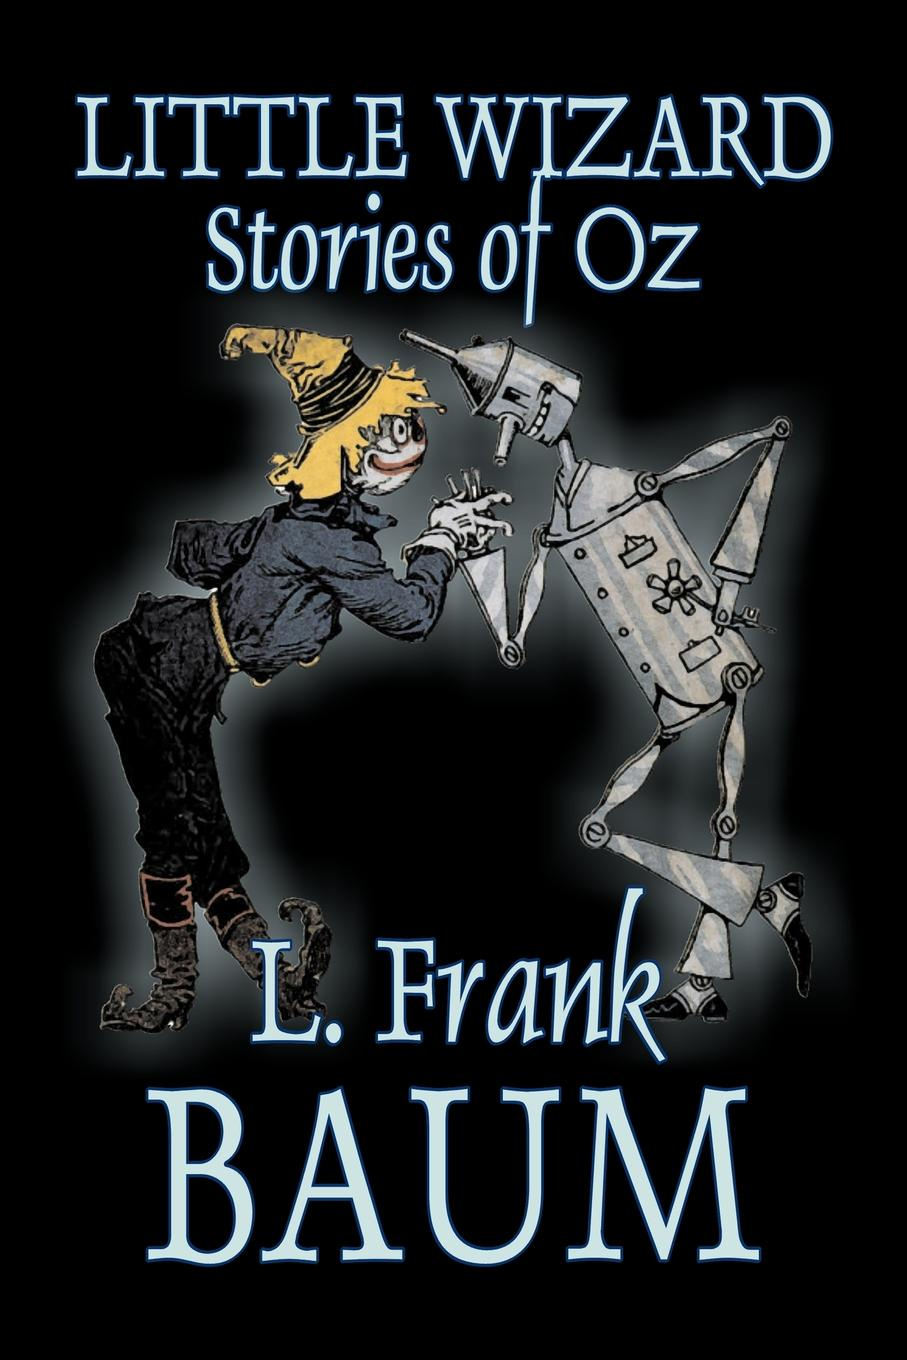 L. Frank Baum Little Wizard Stories of Oz by L. Frank Baum, Fiction, Fantasy, Fairy Tales, Folk Tales, Legends & Mythology malcolm kemp extreme events robust portfolio construction in the presence of fat tails isbn 9780470976791